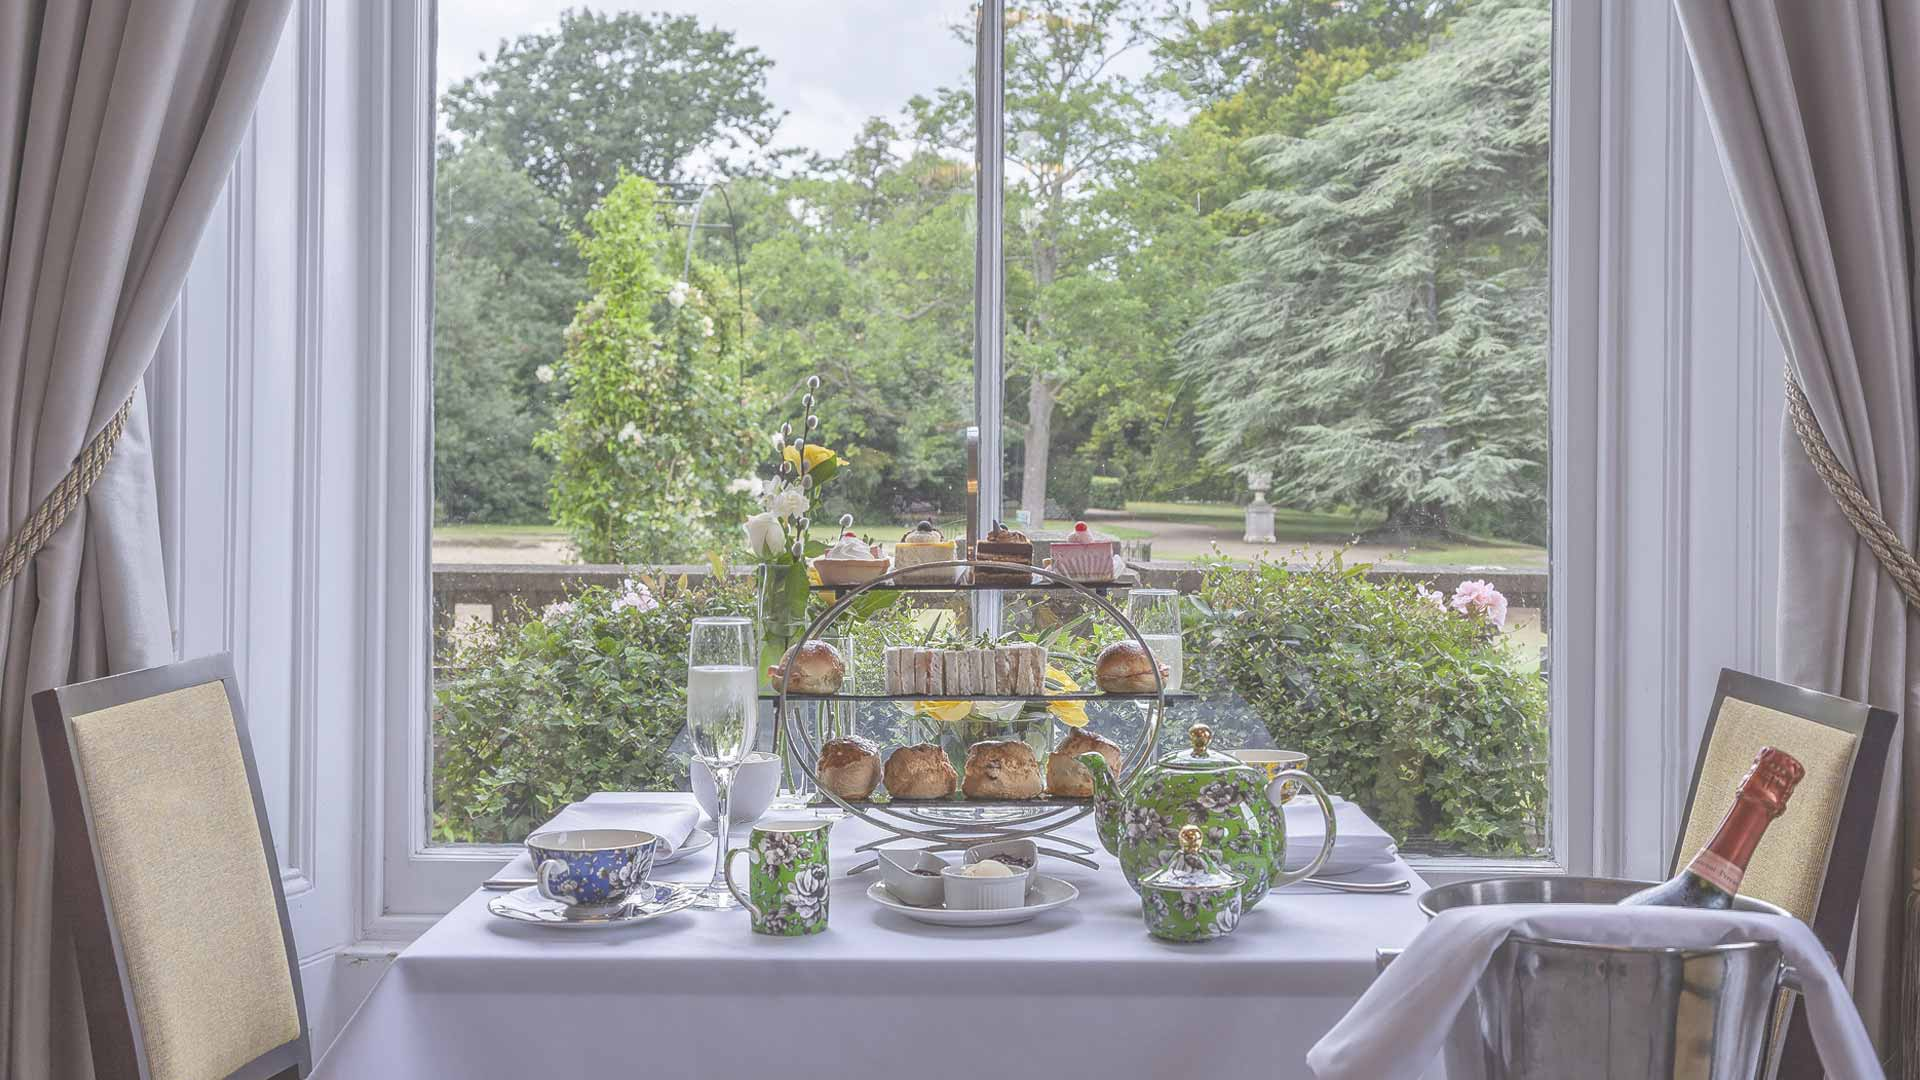 One night Stay and afternoon tea